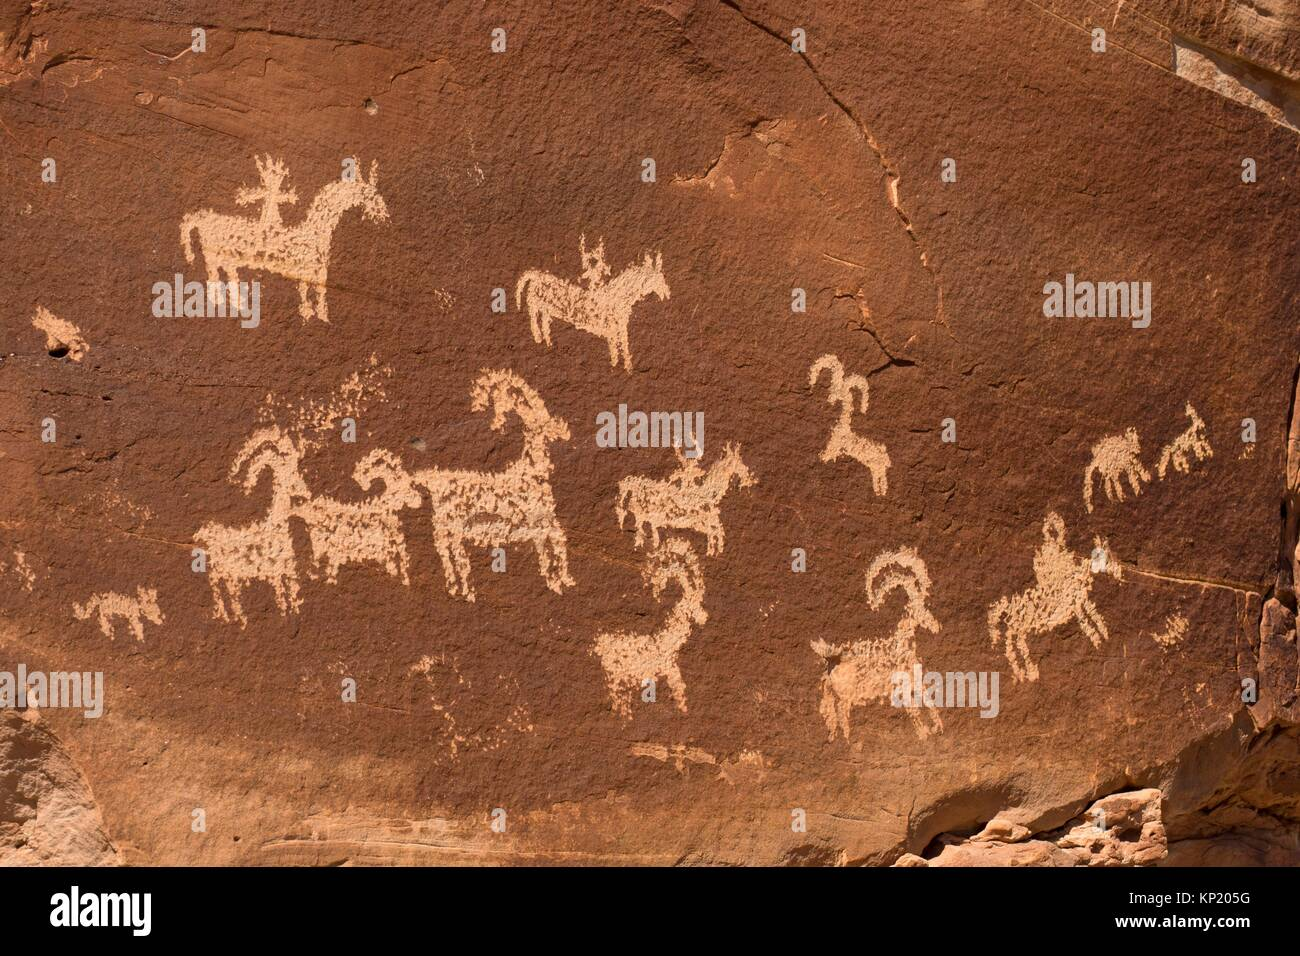 Petroglyphs at Wolfe Ranch, Arches National Park, Utah. - Stock Image